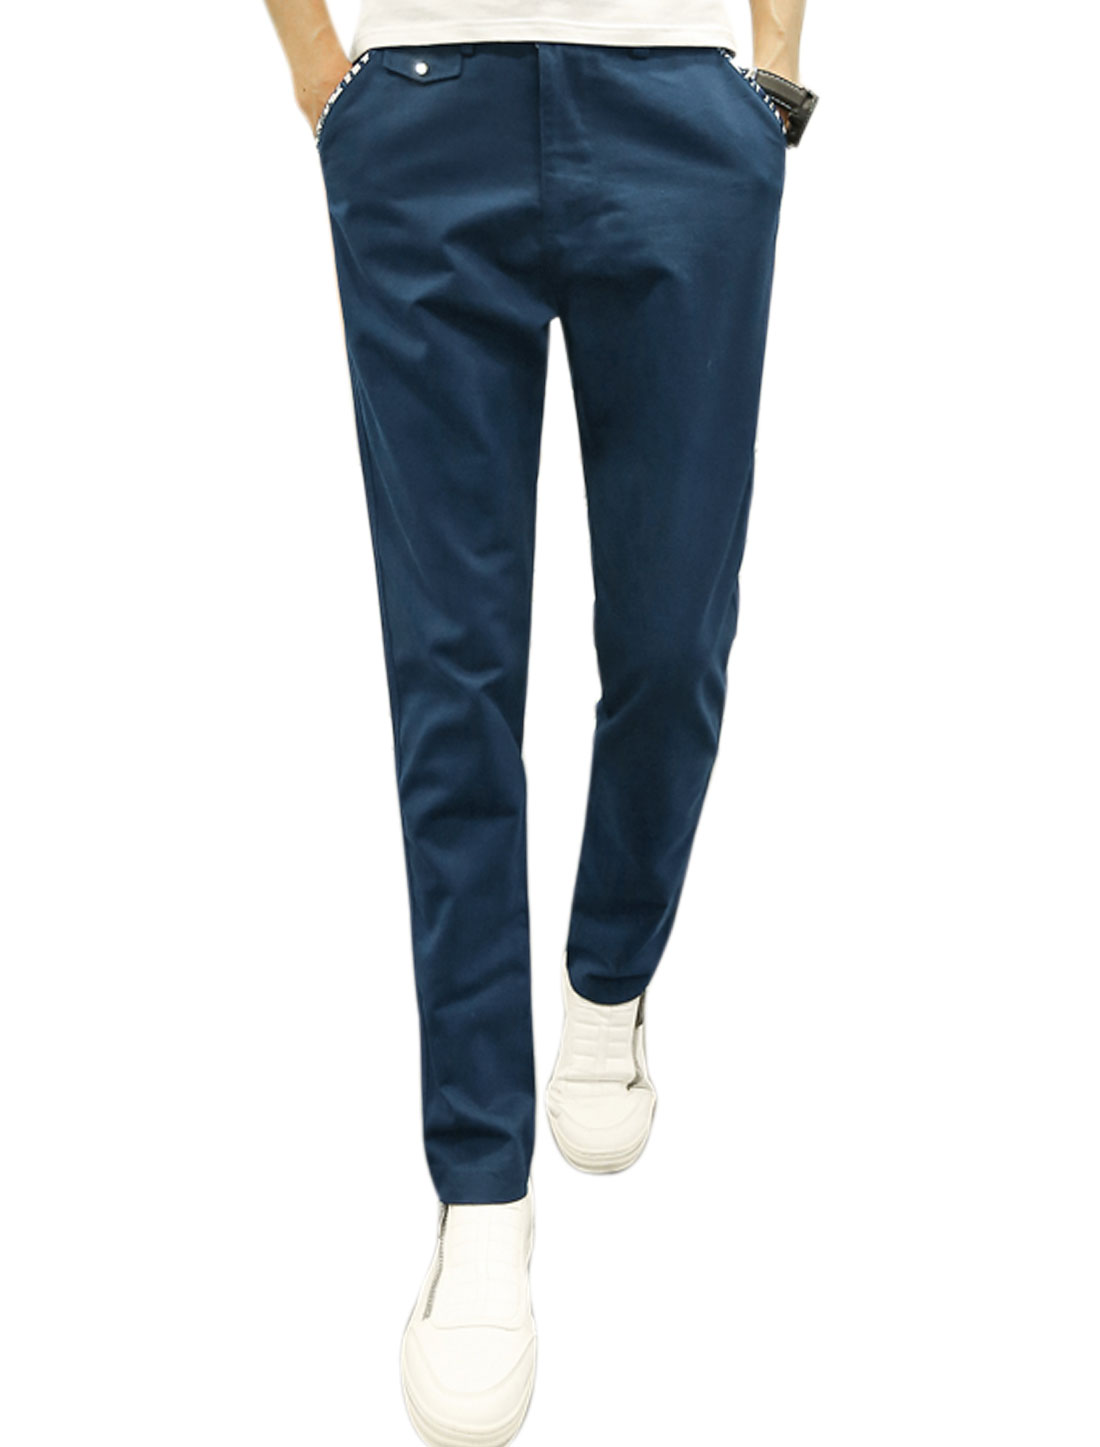 Men Button Closure Natural Waist Slant Pockets Tapered Trousers Navy Blue W32